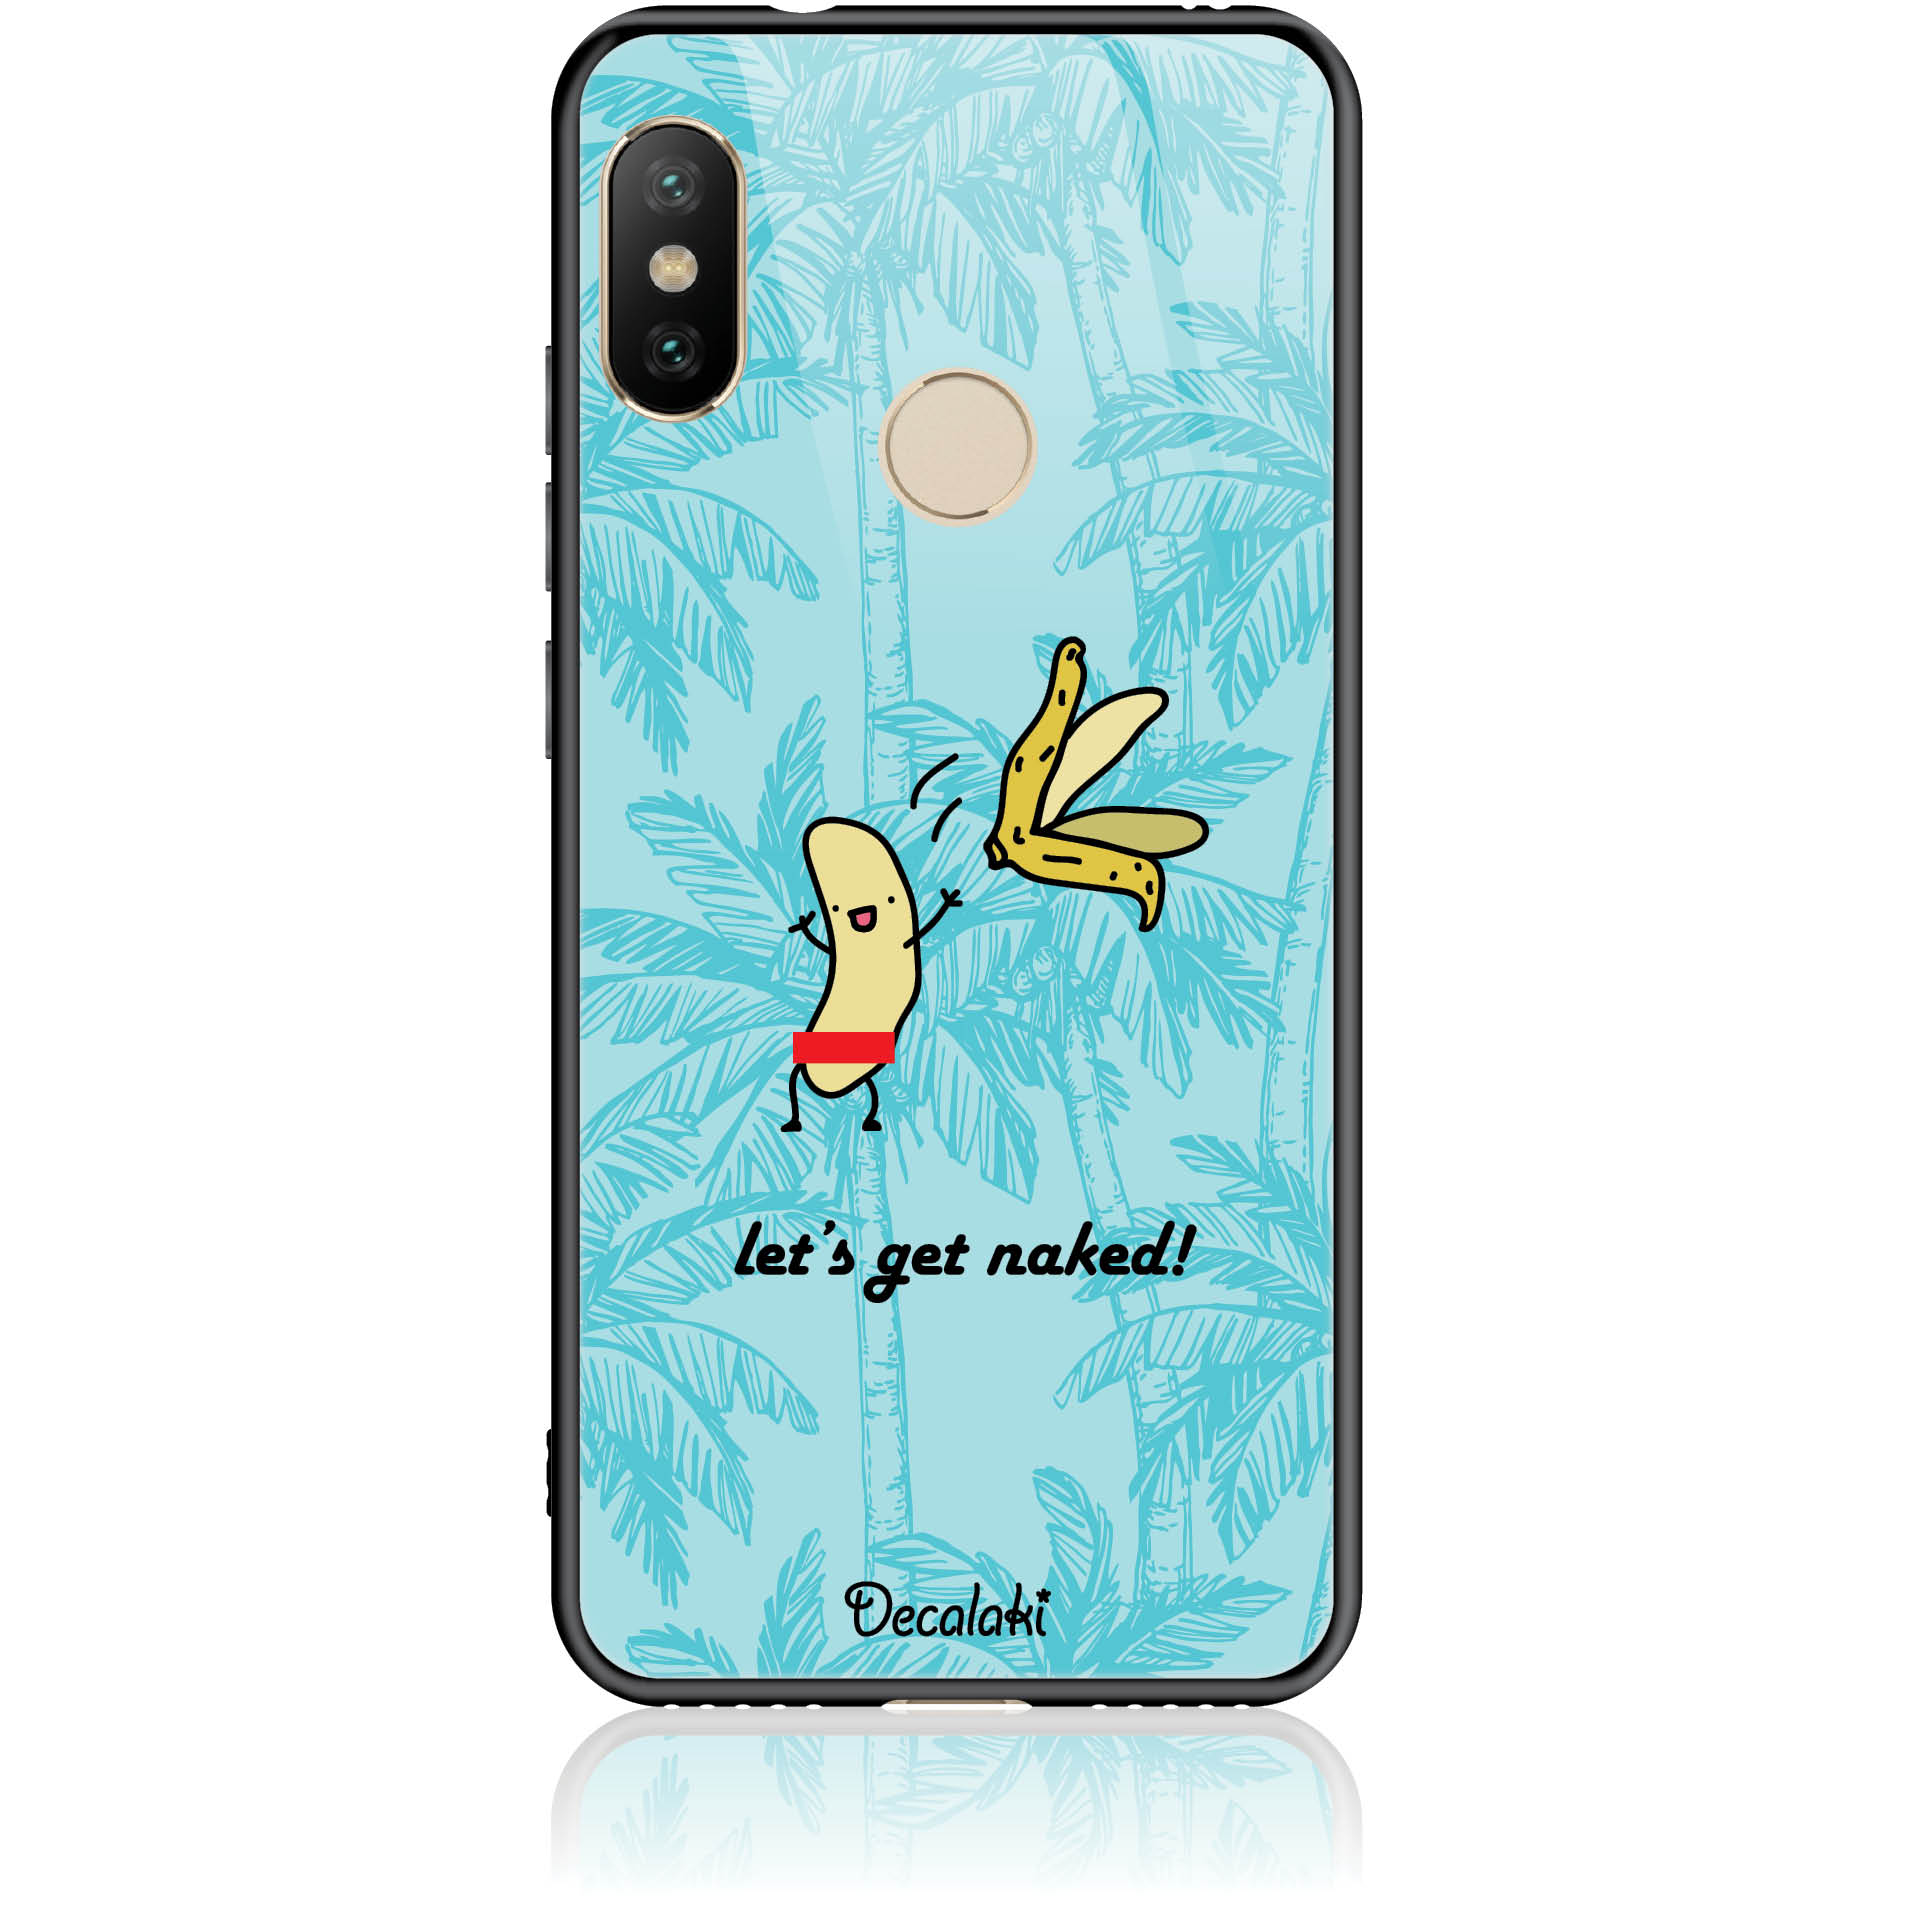 Let's Get Naked Phone Case Design 50431  -  Xiaomi Redmi 6 Pro  -  Tempered Glass Case